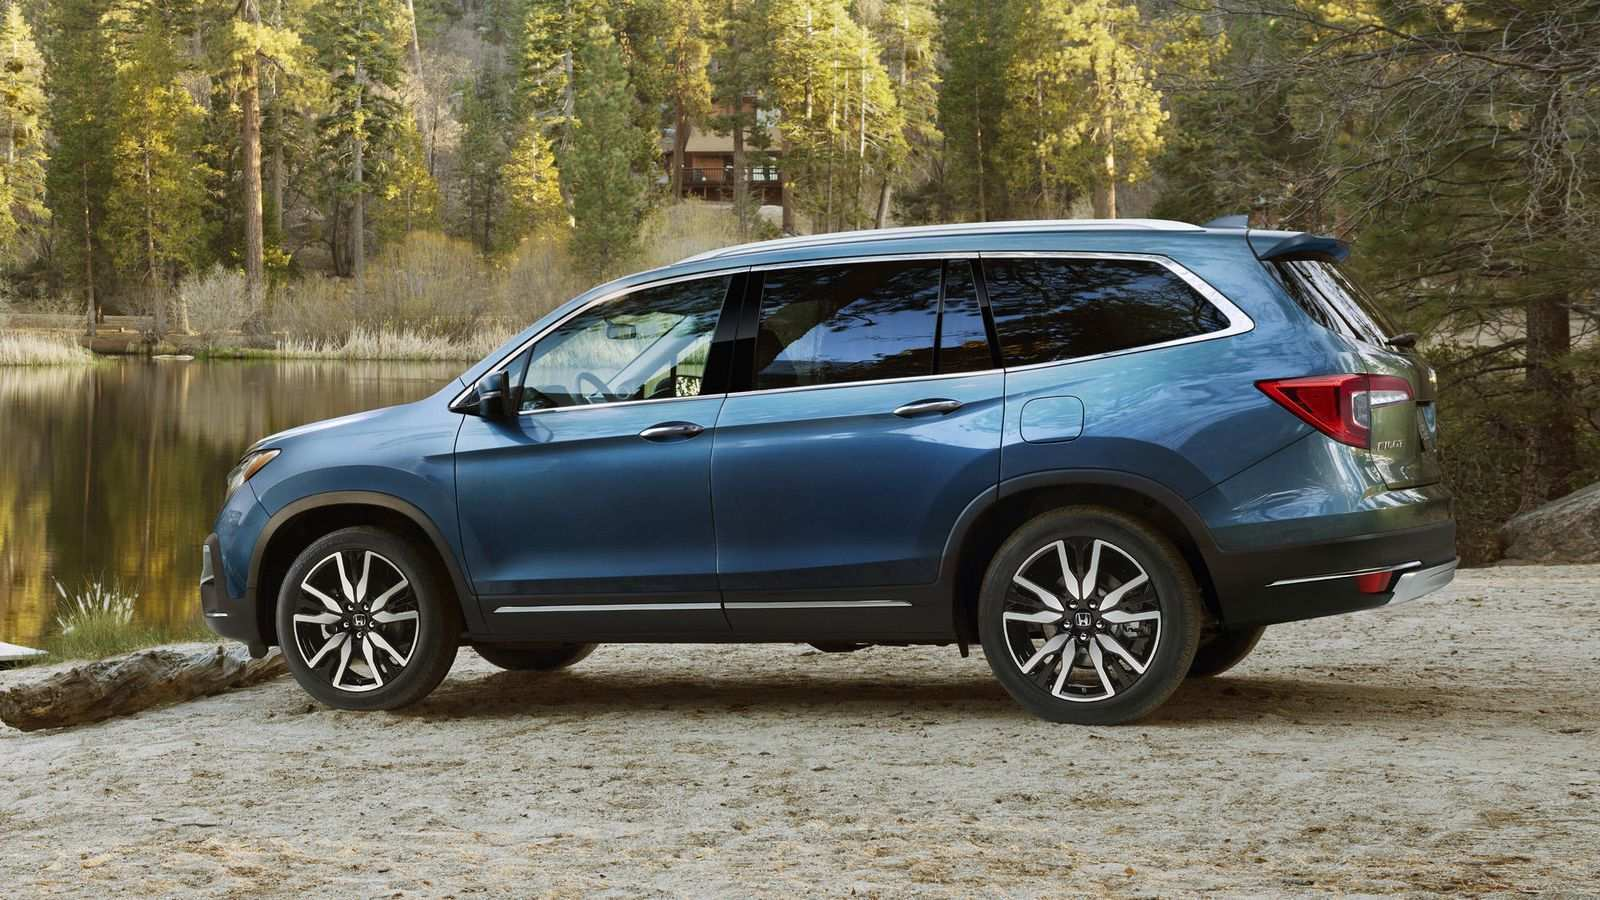 47 Gallery of The 2018 Vs 2019 Honda Pilot Price And Review Pictures with The 2018 Vs 2019 Honda Pilot Price And Review